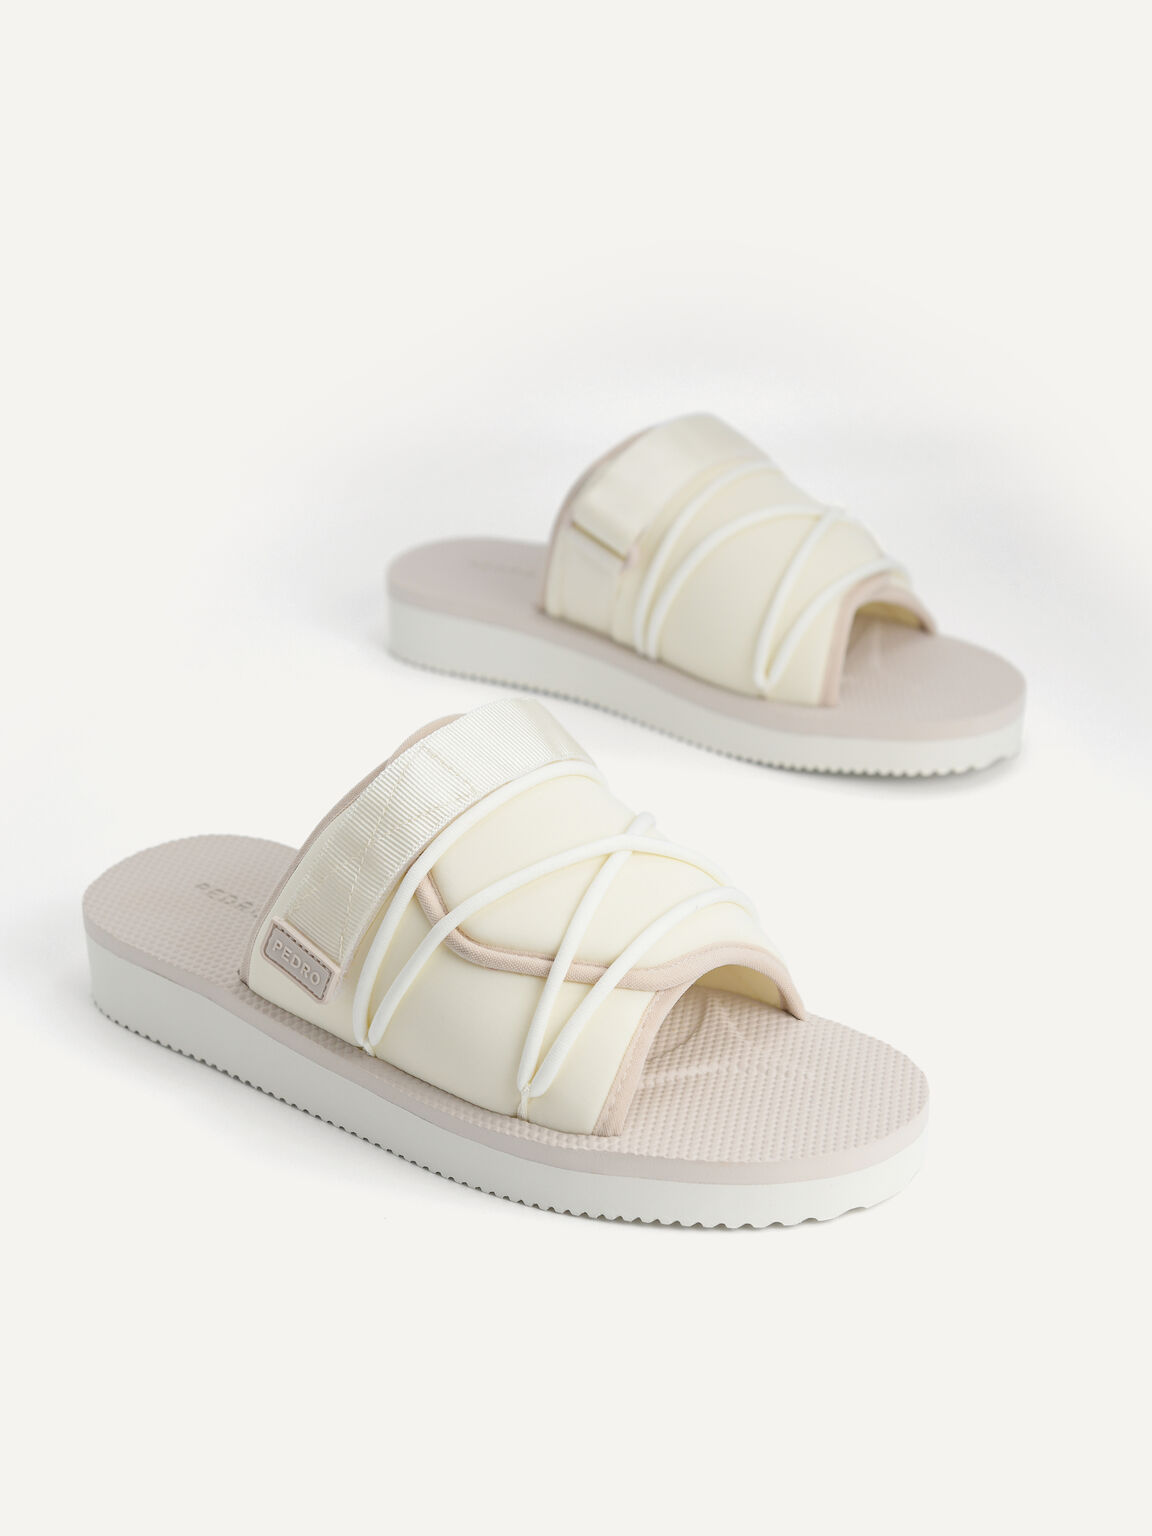 Casual Slides with Lace Detail, White, hi-res